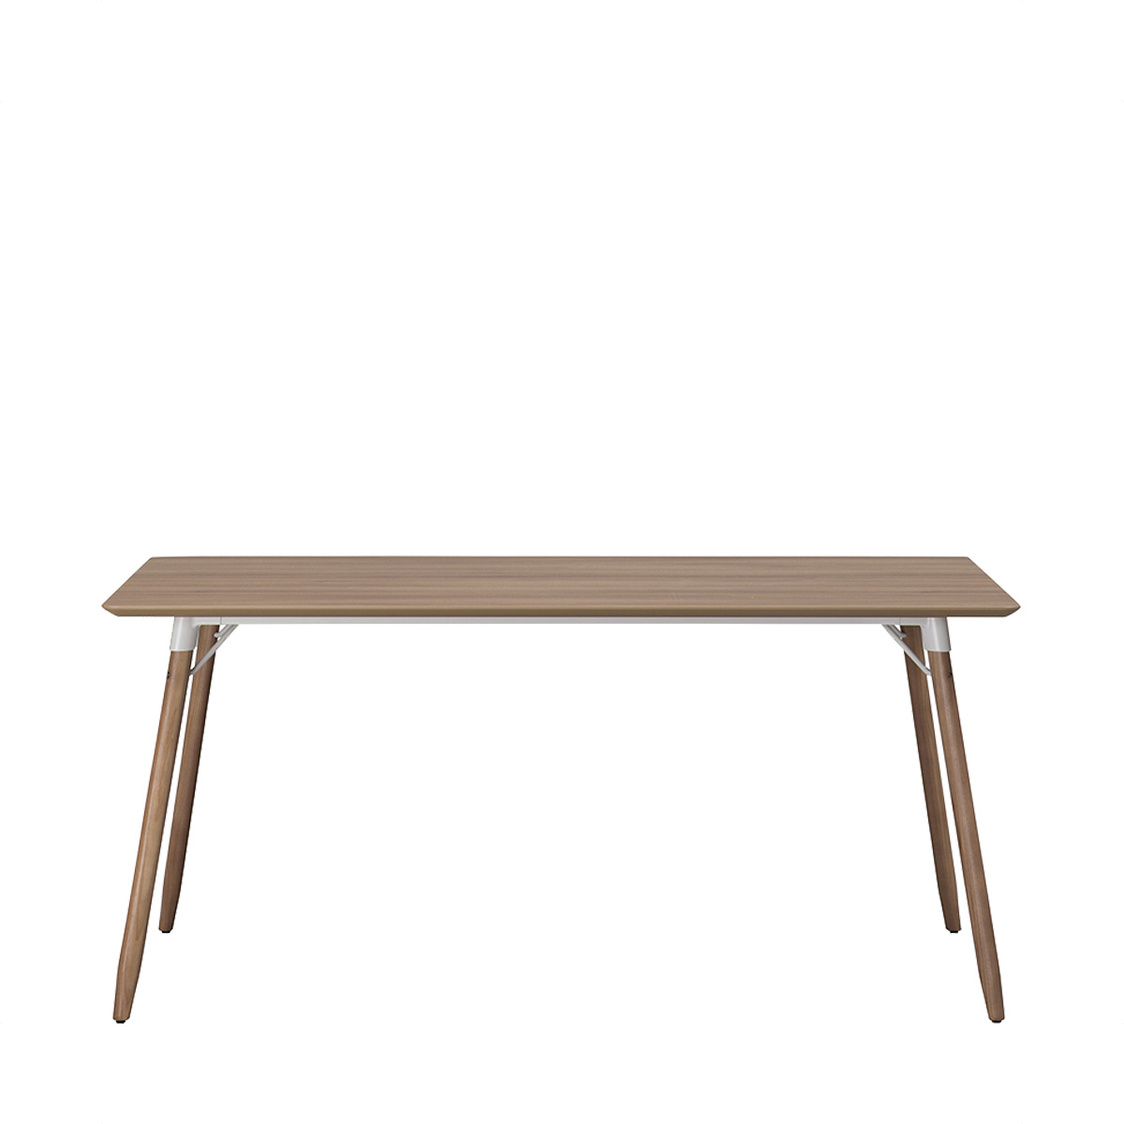 BIBI Dining Table for 6 HT30T16EL-UAUA